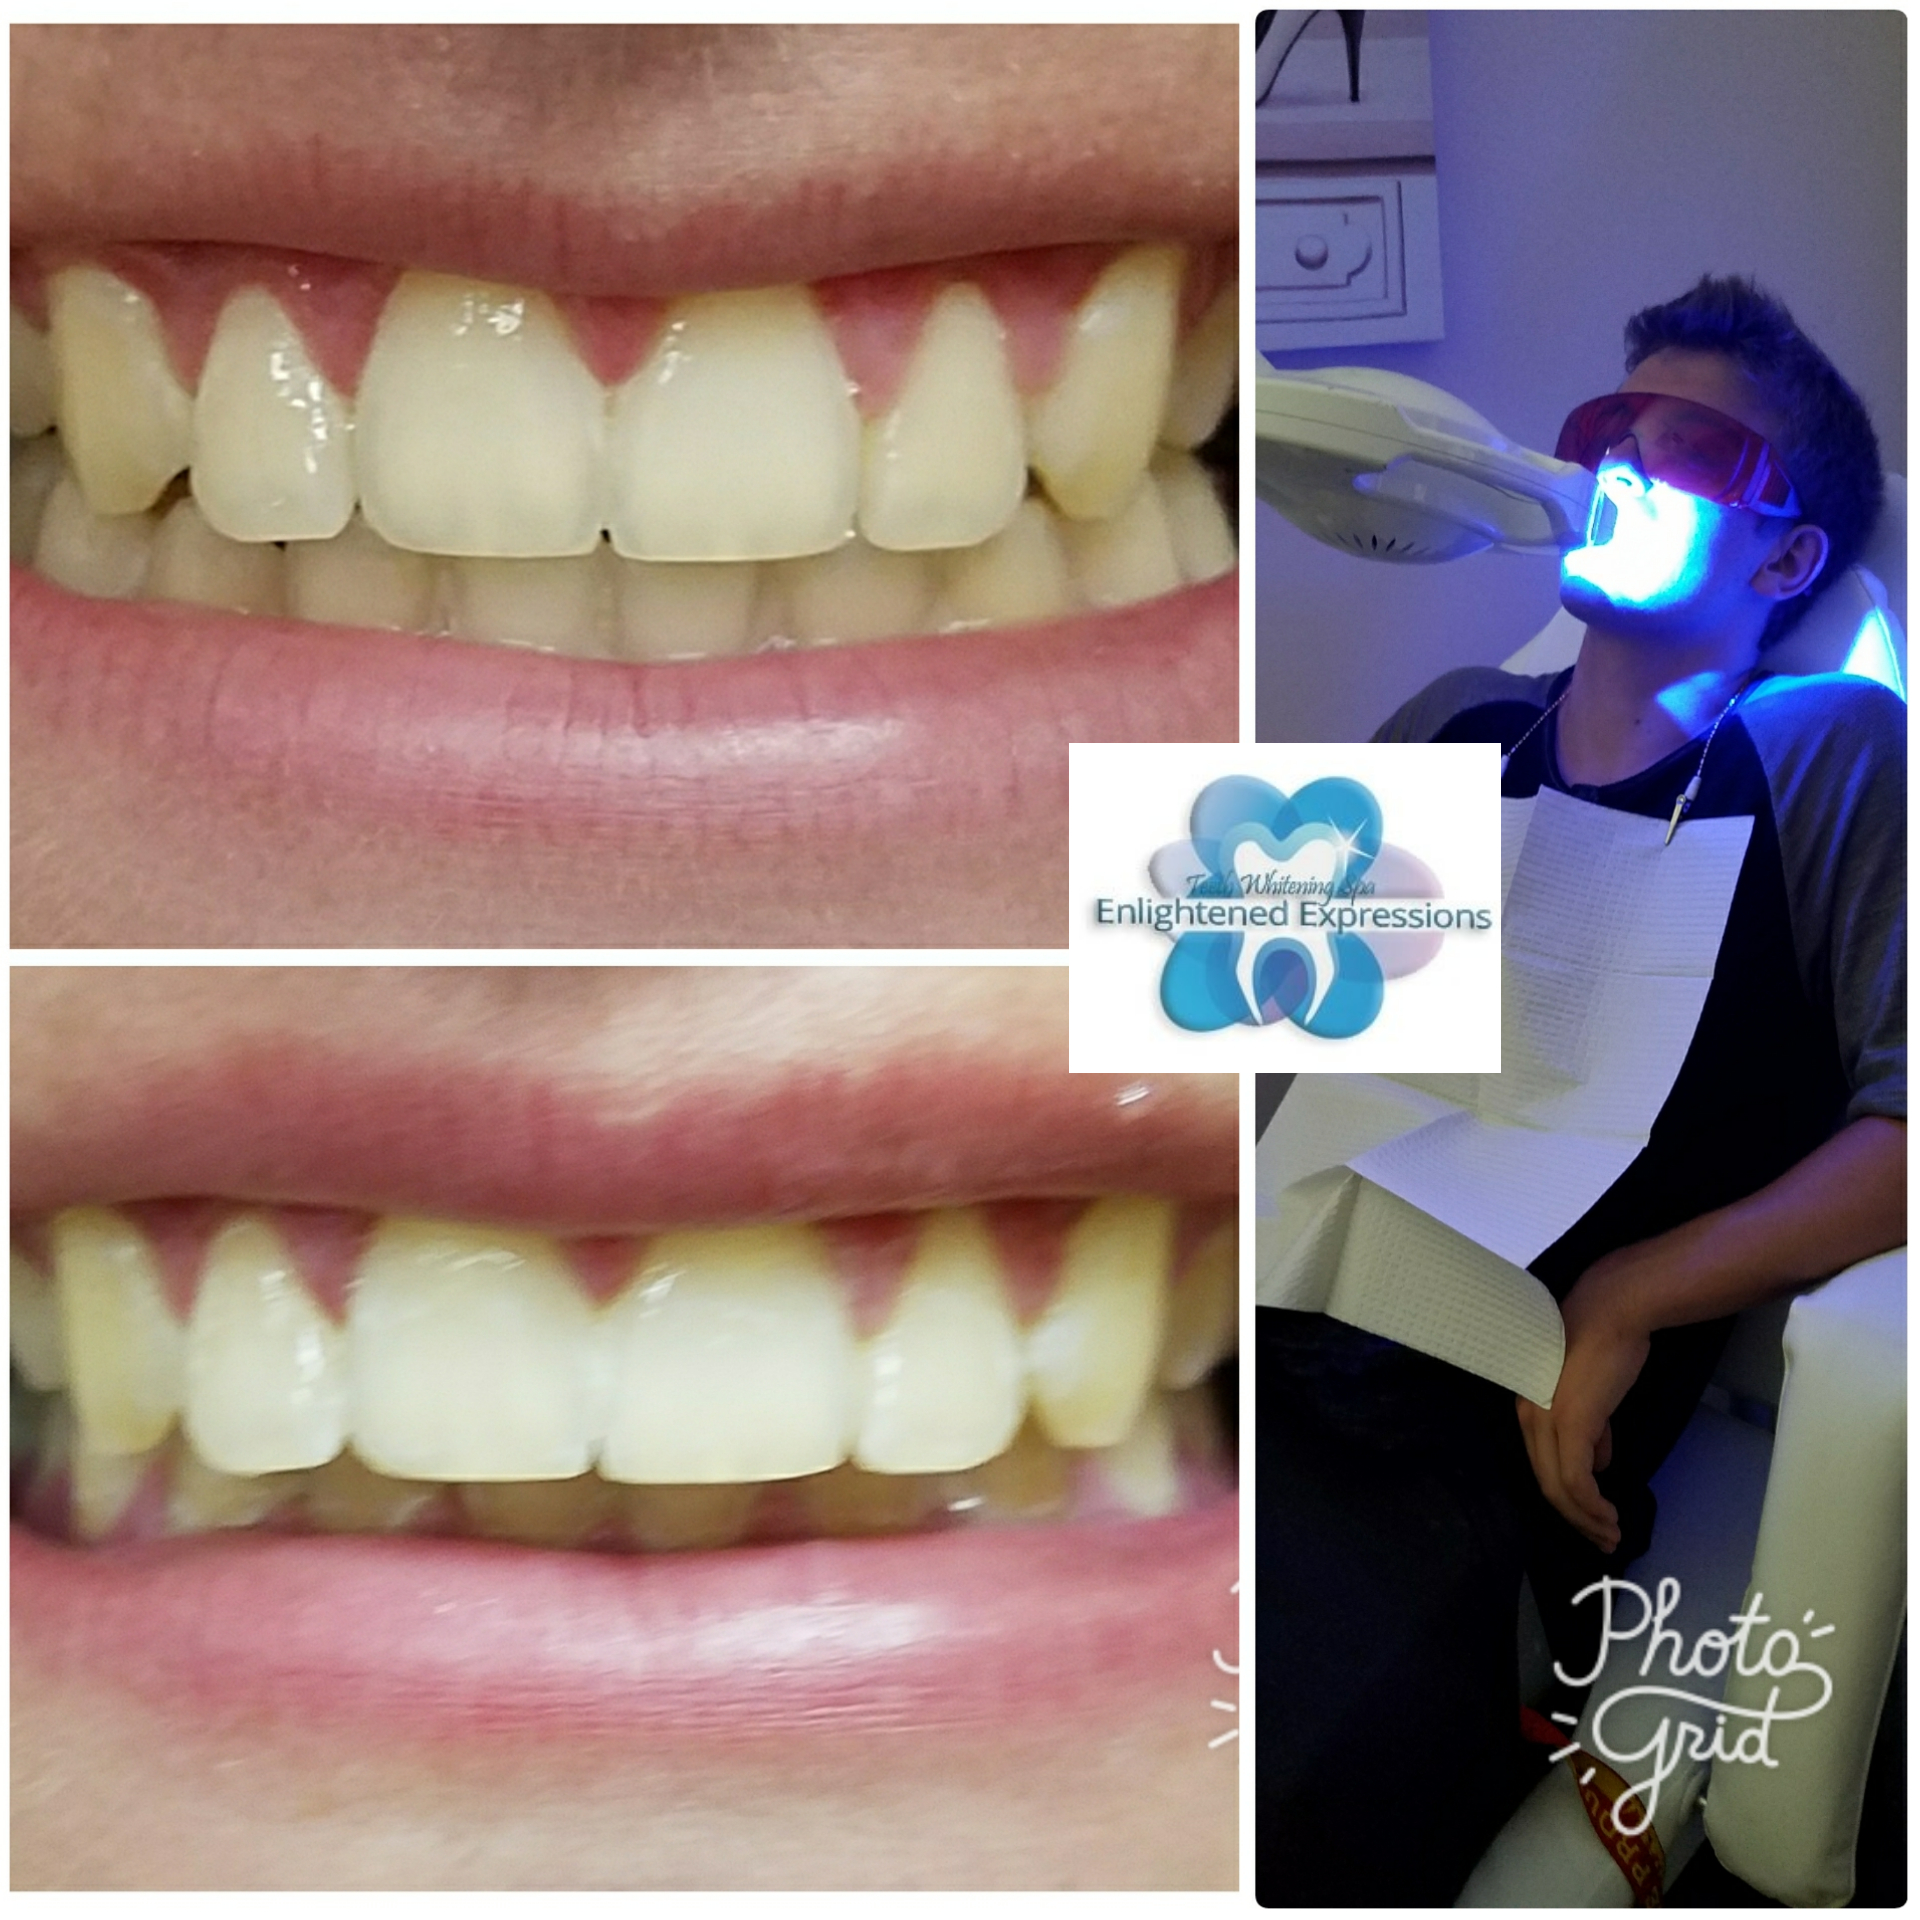 Teeth Whitening Process & Results